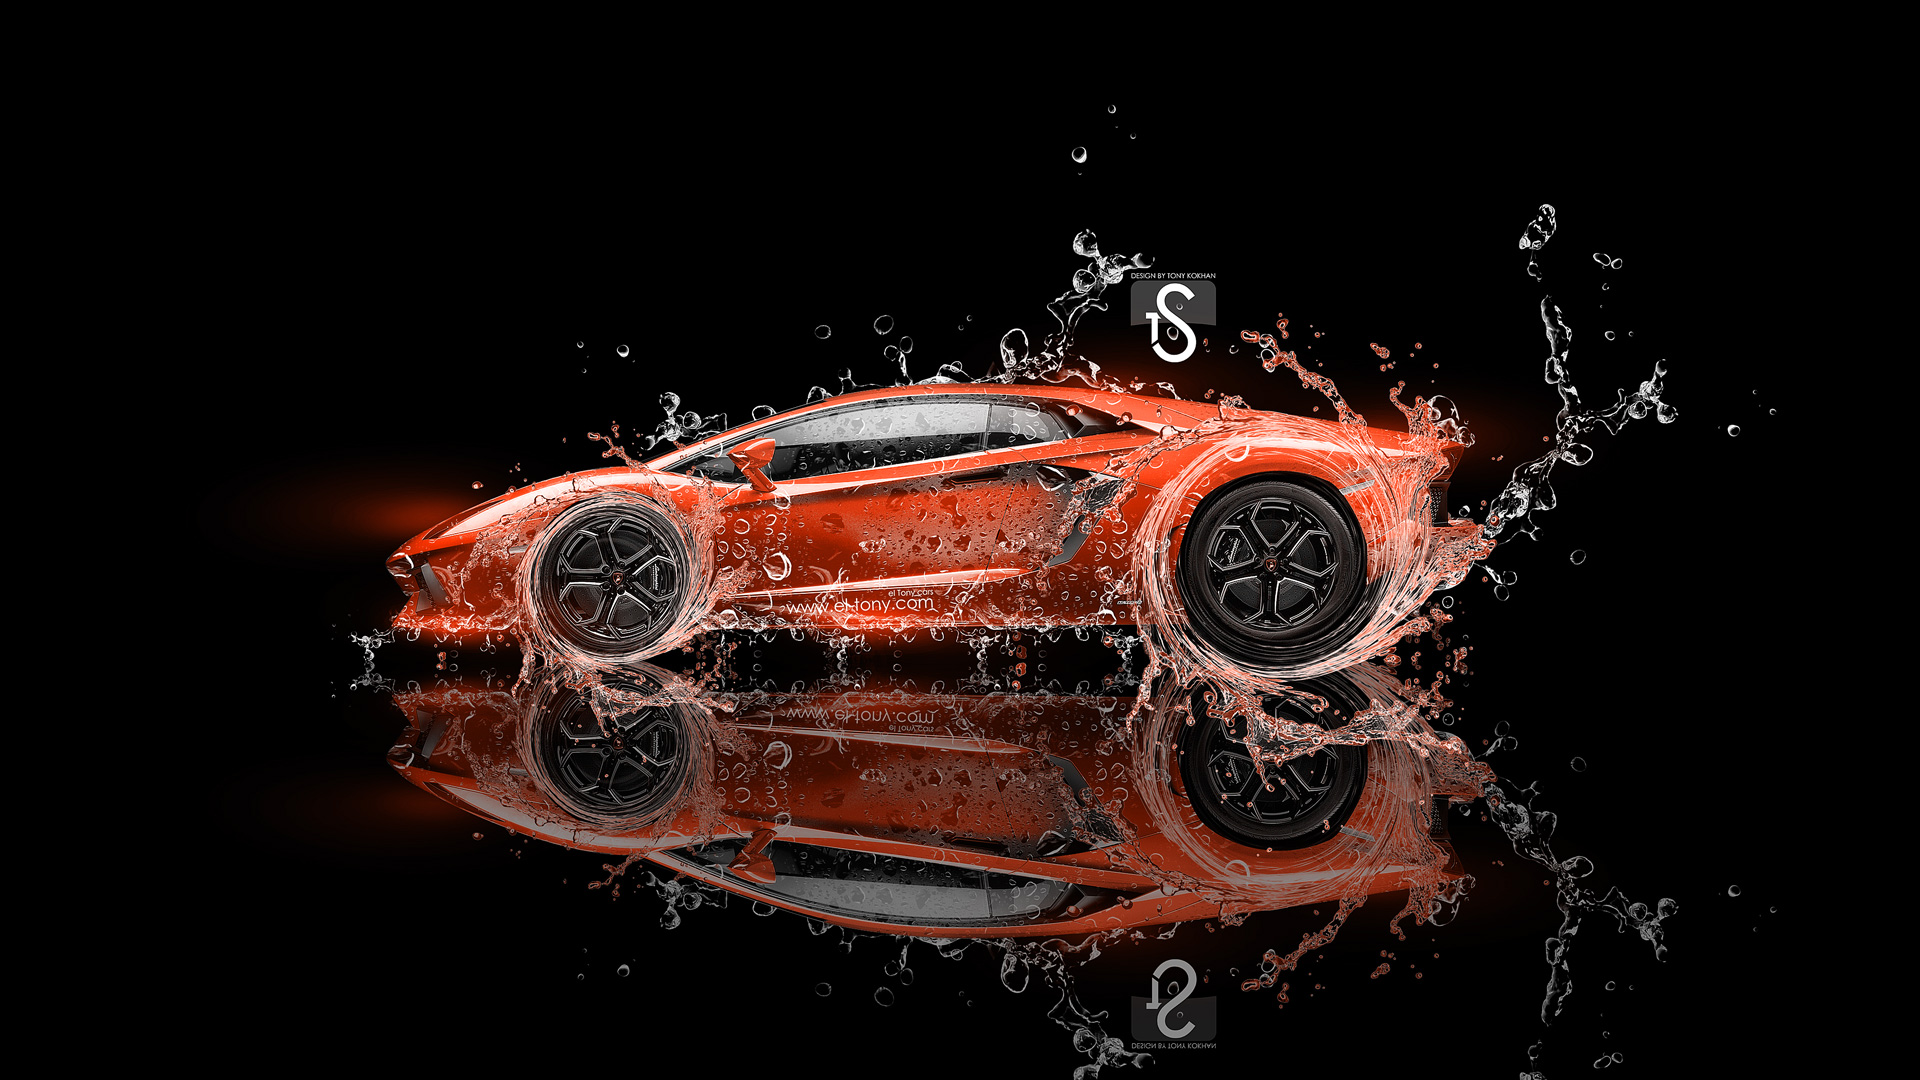 Lamborghini Aventador Super Water Car 2013 El Tony